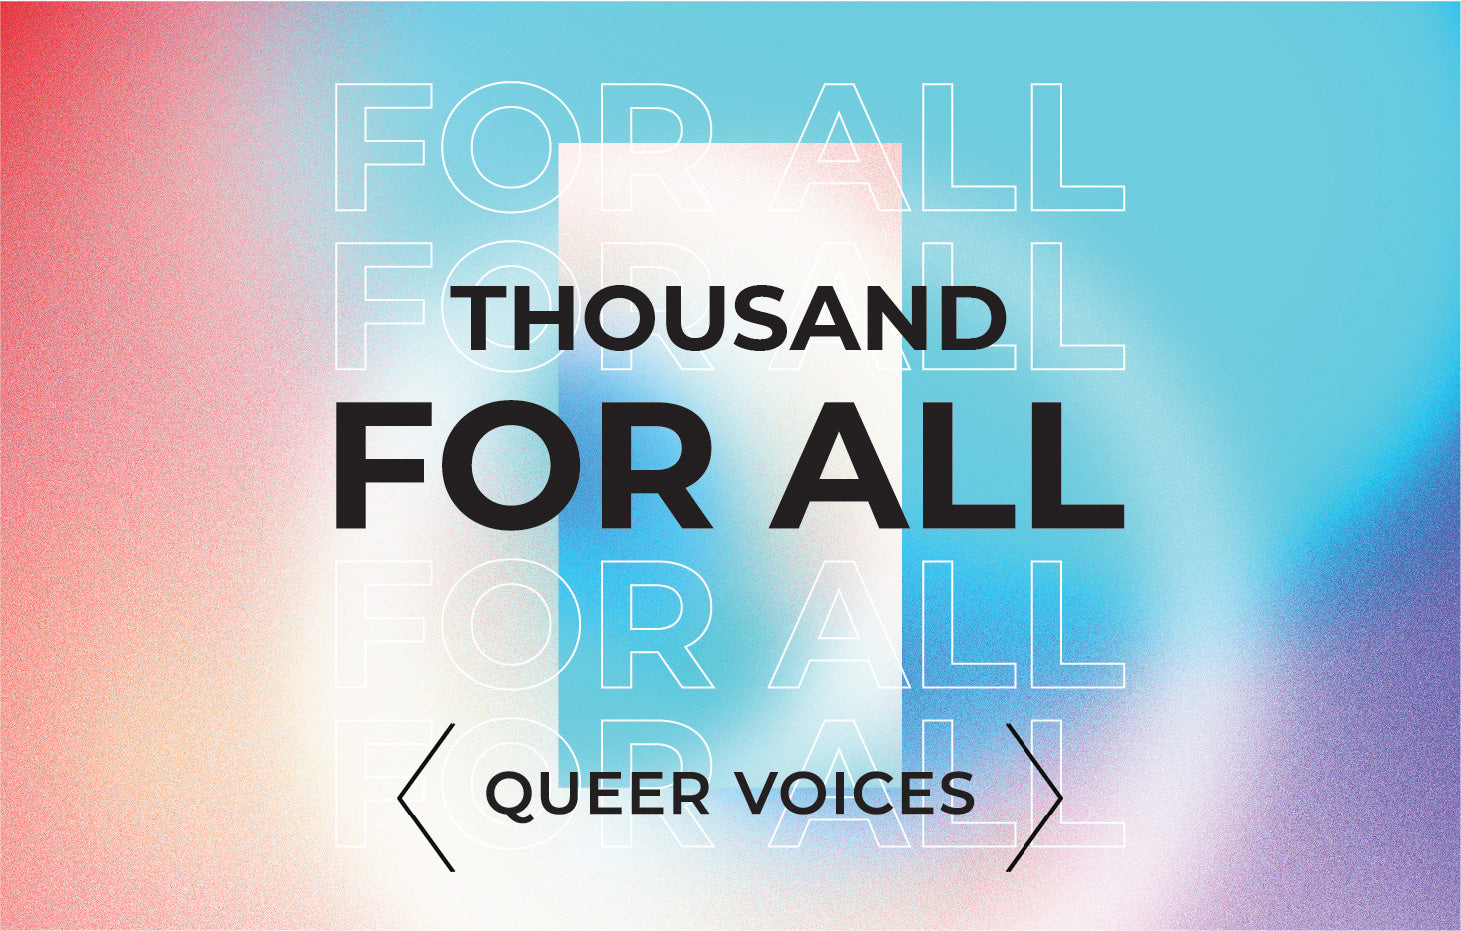 THOUSAND FOR ALL: QUEER VOICES